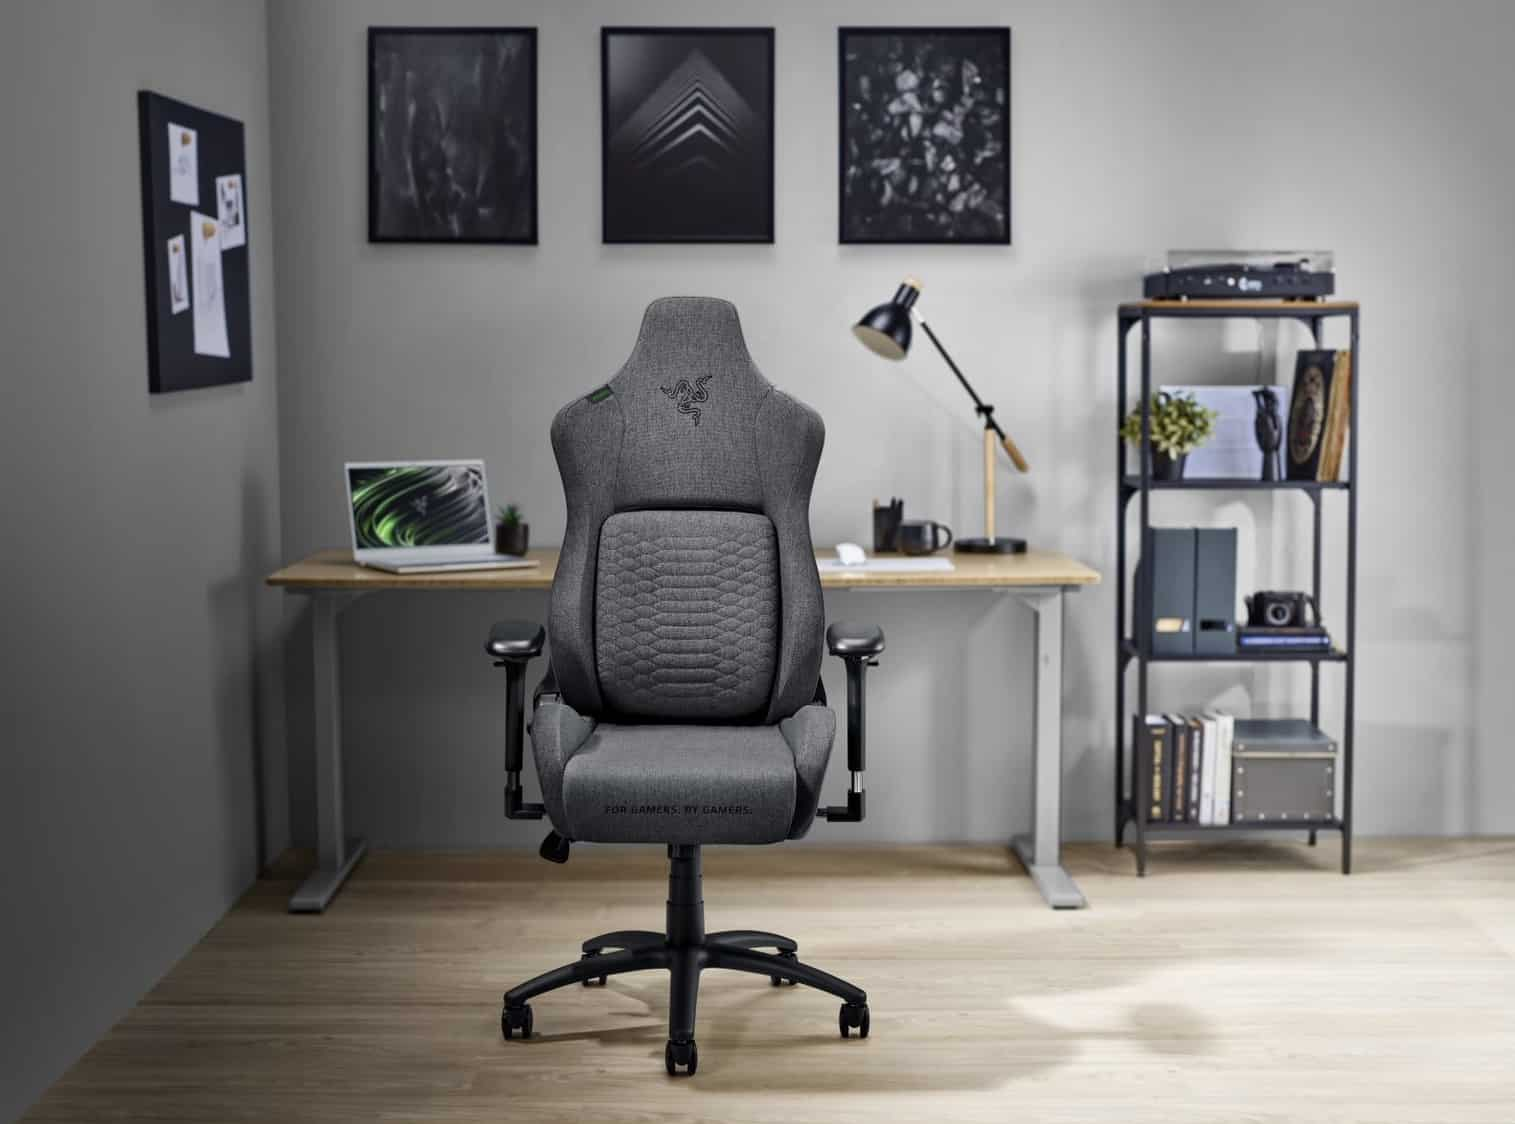 Razer Iskur gaming chair now comes in fabric!